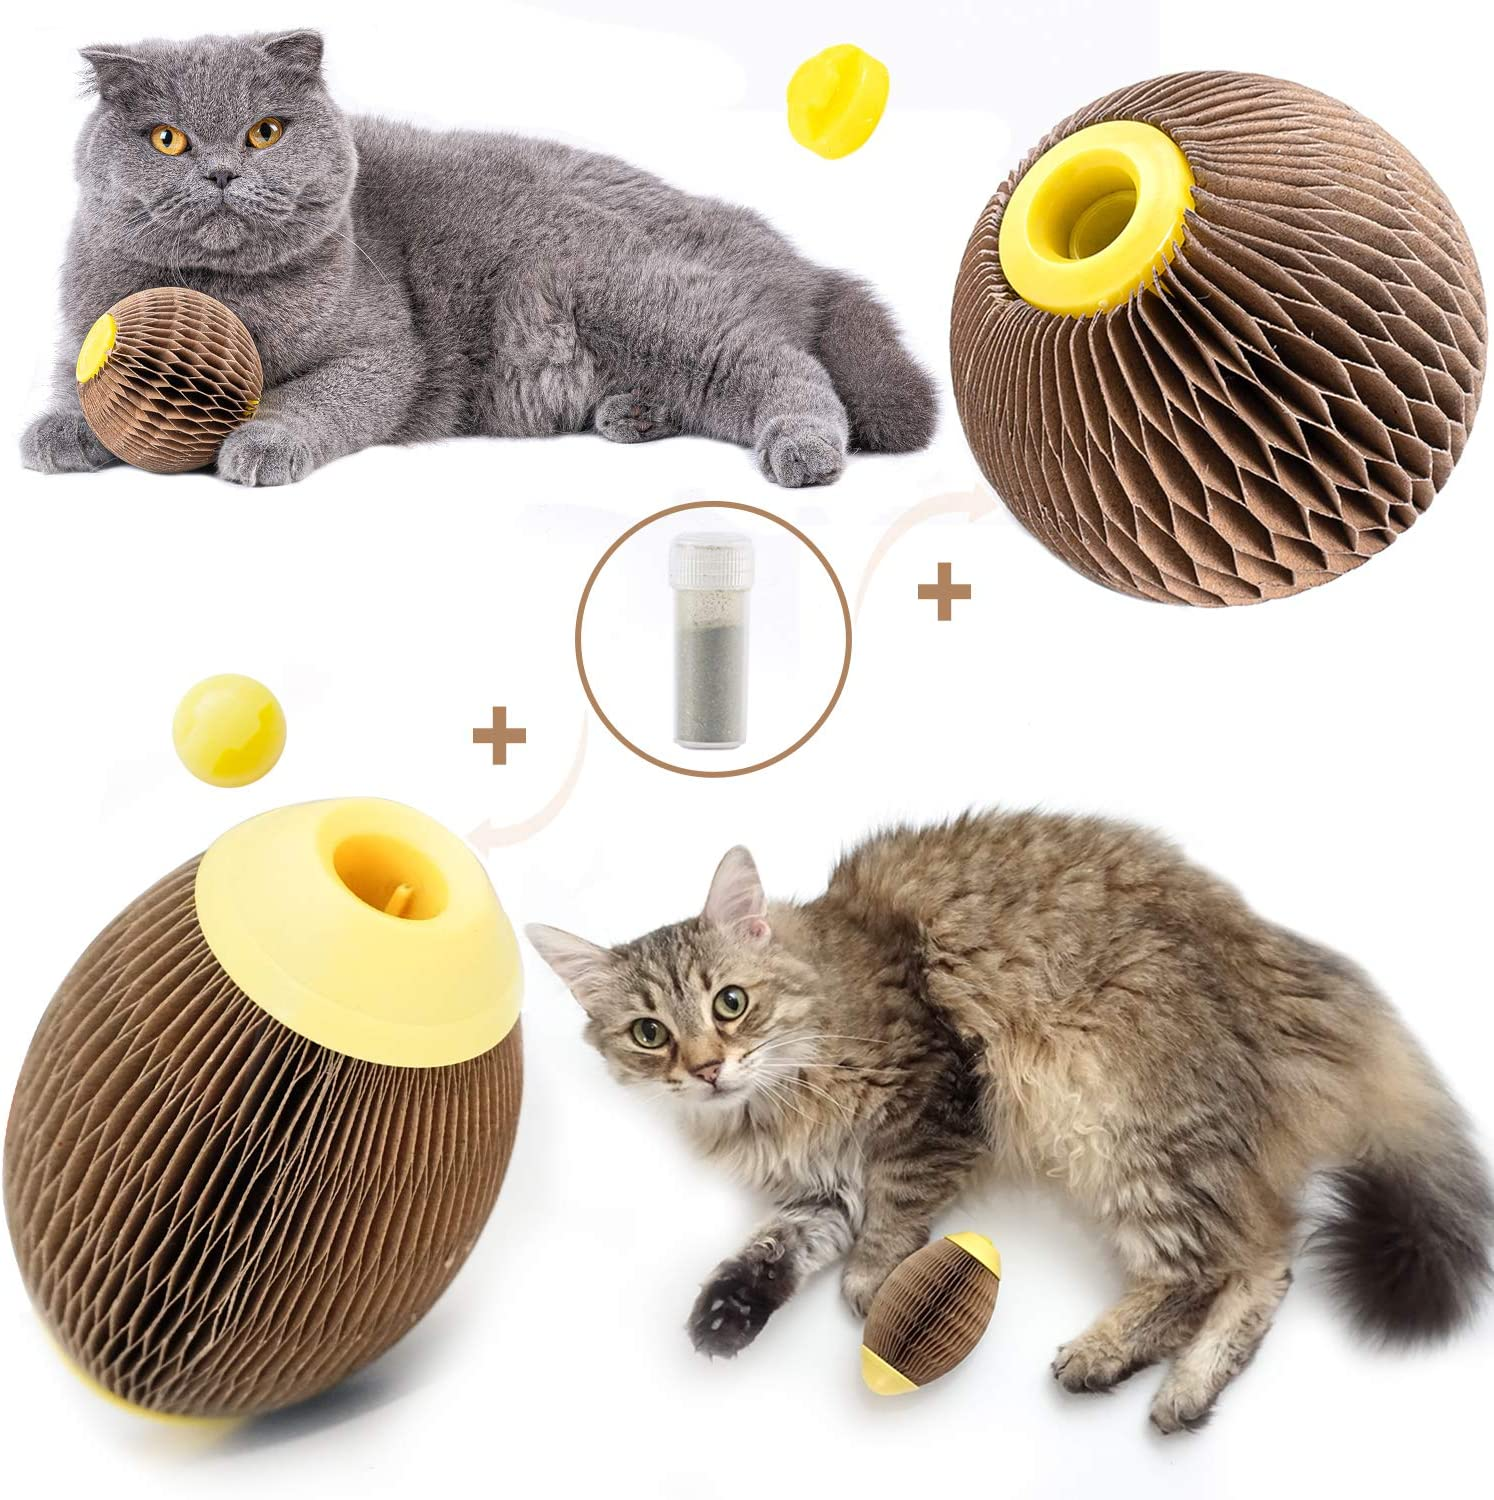 ARELLA 2 PCS Catnip Ball Toys for Cats Catnip Refillable Football Scratcher Balls Kitty's Faithful Playmate Reduce Obesity and Loneliness CSB16BR